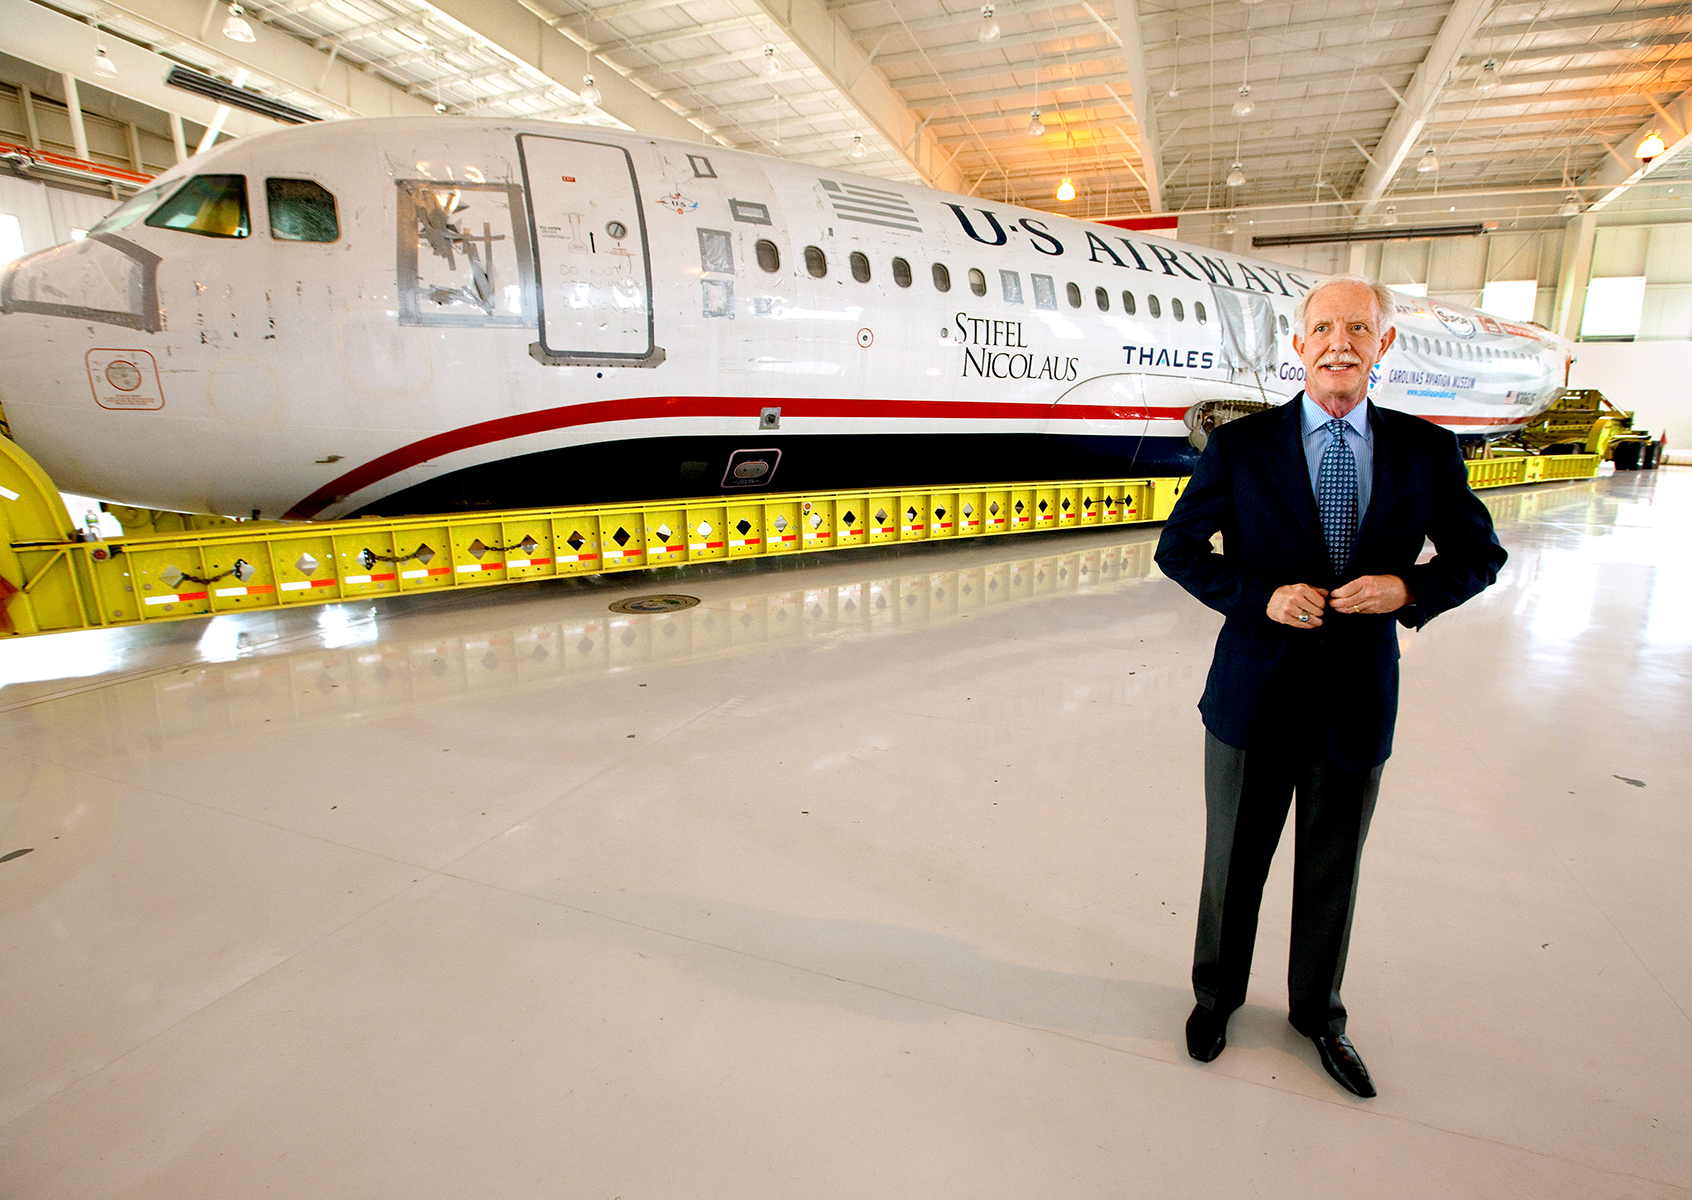 Captain Chesley {quote}Sully{quote} Sullenberger was in Charlotte NC to greet the arrival of US Airways Flight 1549, also known as the Miracle on the Hudson plane, at the Carolina Aviation Museum in Charlotte, NC.  Two years earlier, the commercial passenger flight was enroute to Charlotte/Douglas International Airport when it was successfully landed in New York's Hudson River after striking a flock of Canada Geese six minutes after taking off from LaGuardia Airport.